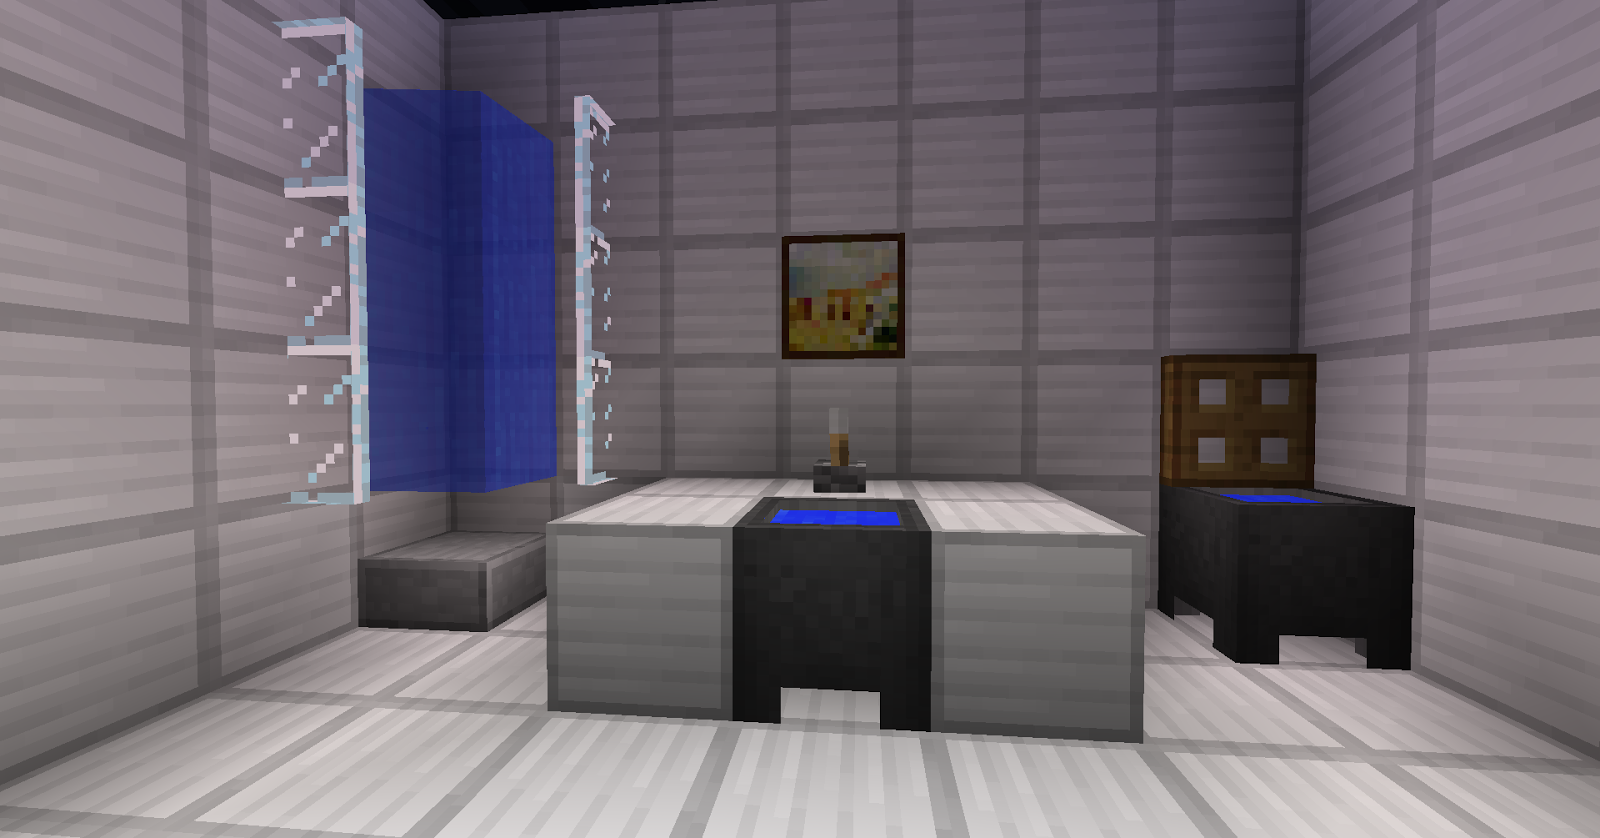 minecraft bathroom ideas bathroom ideas